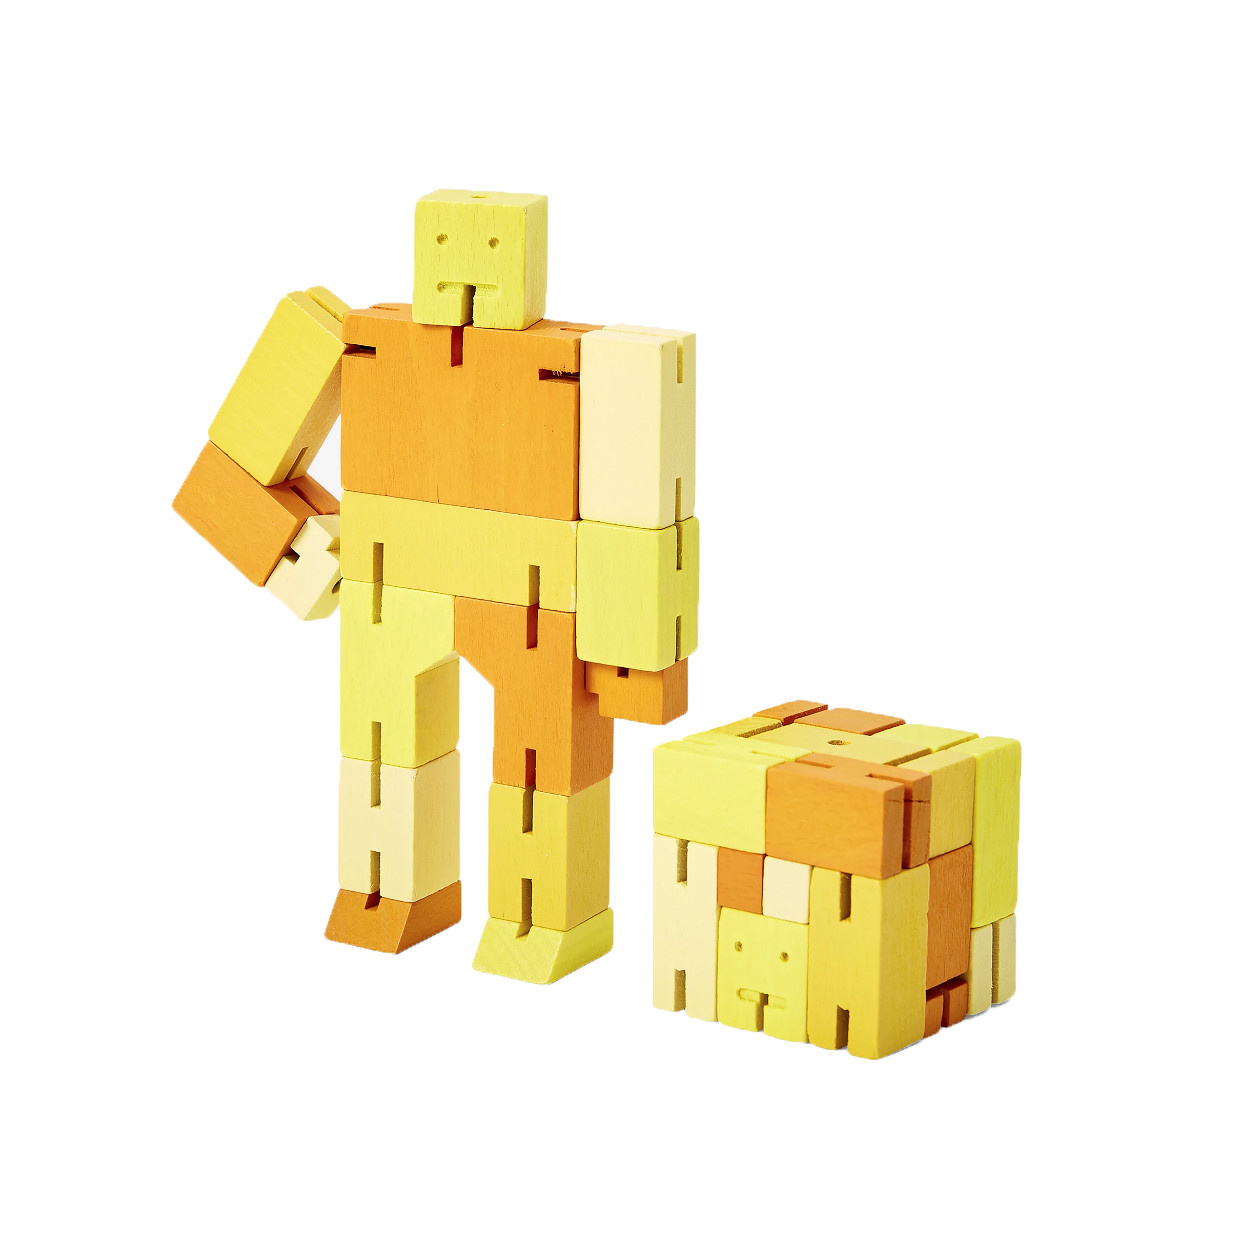 Areaware Cubebot Capsule Micro - Yellow Multi